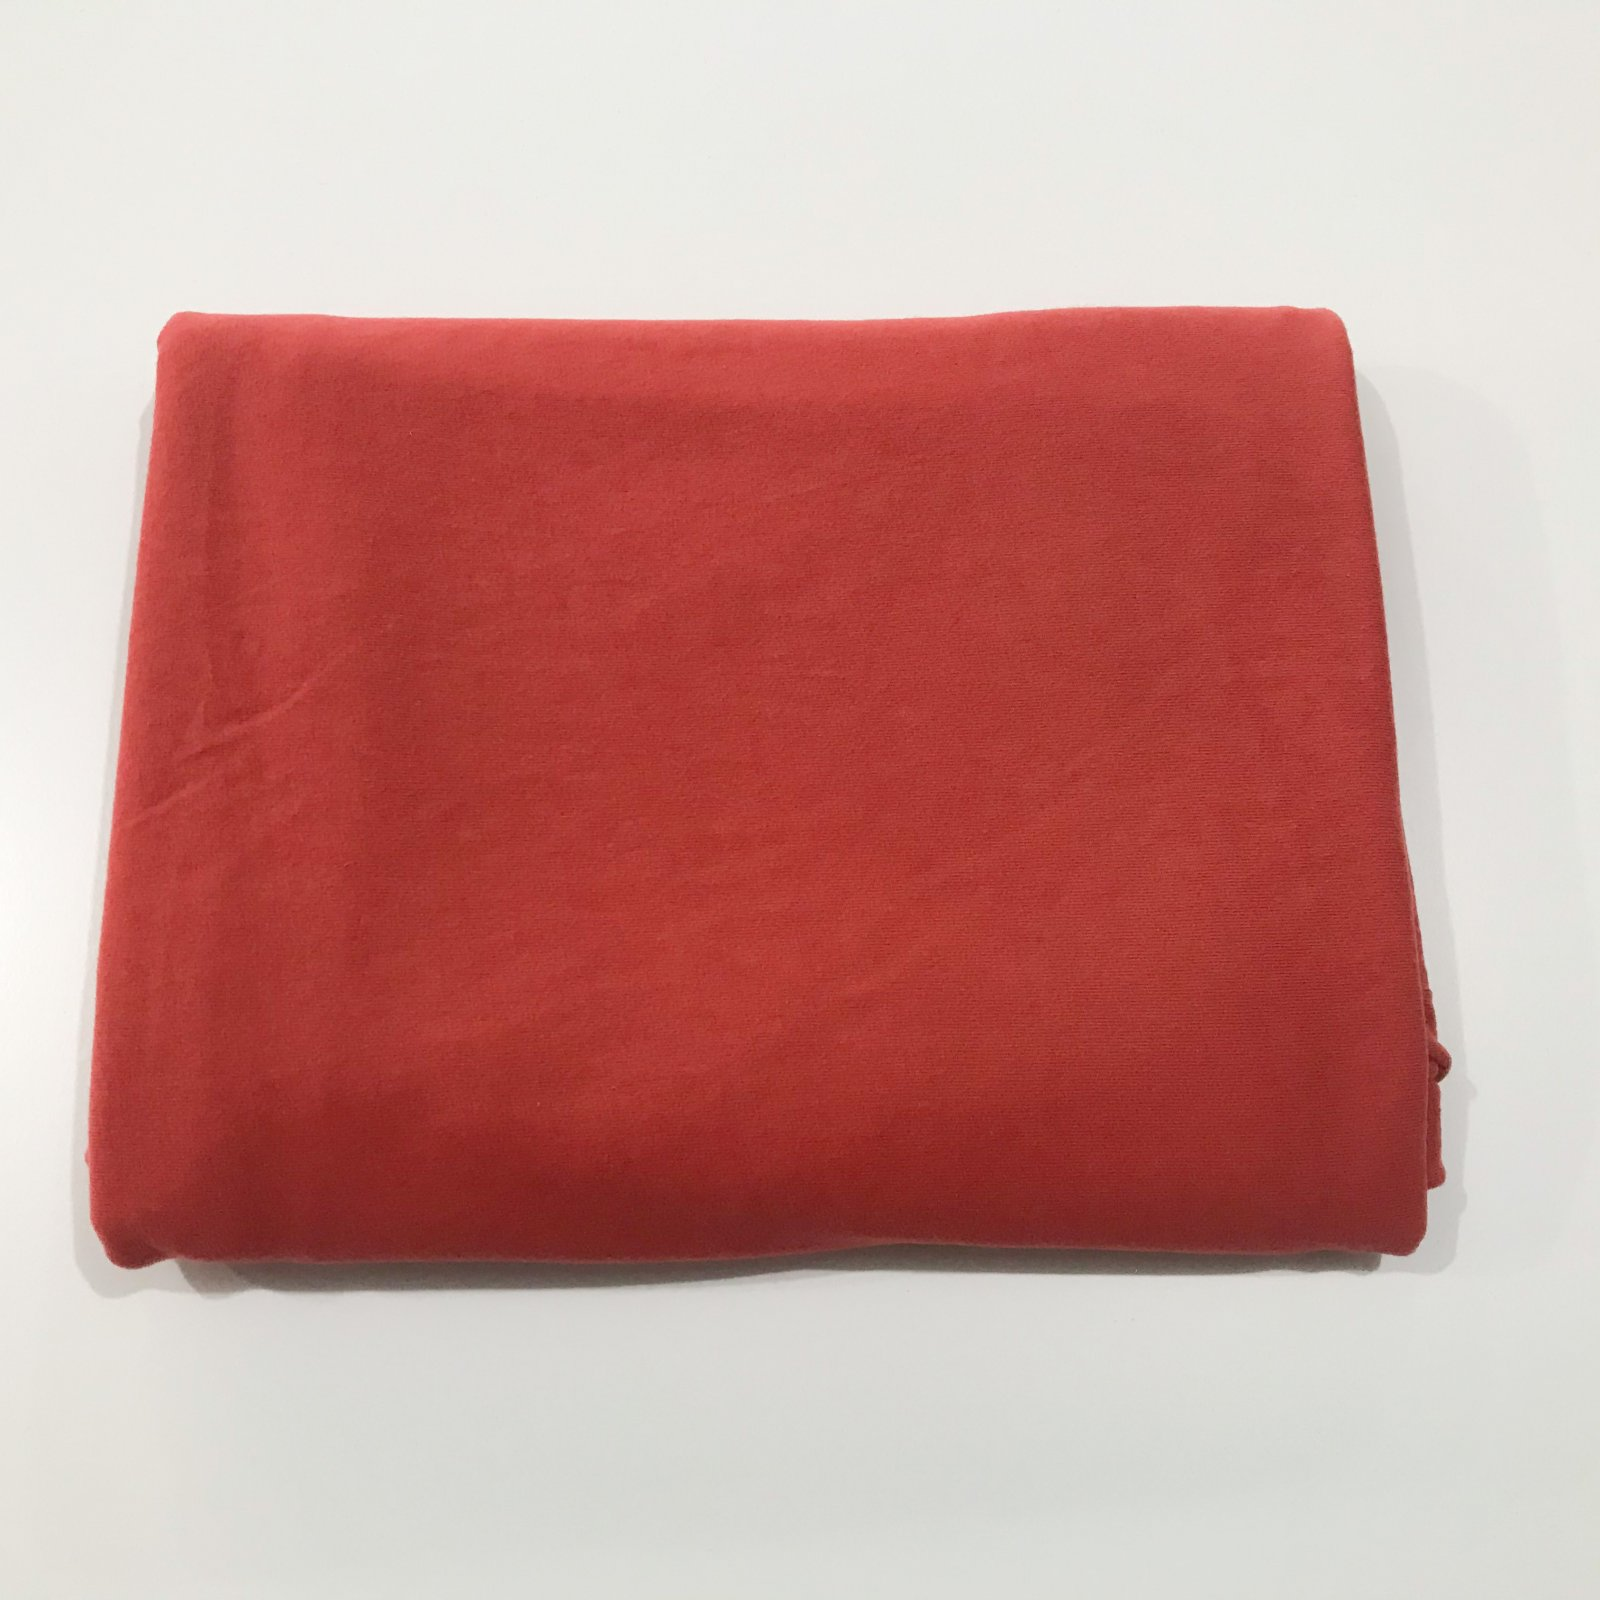 1 yard + 34 inches - Organic Jersey Knit - Rubi Red